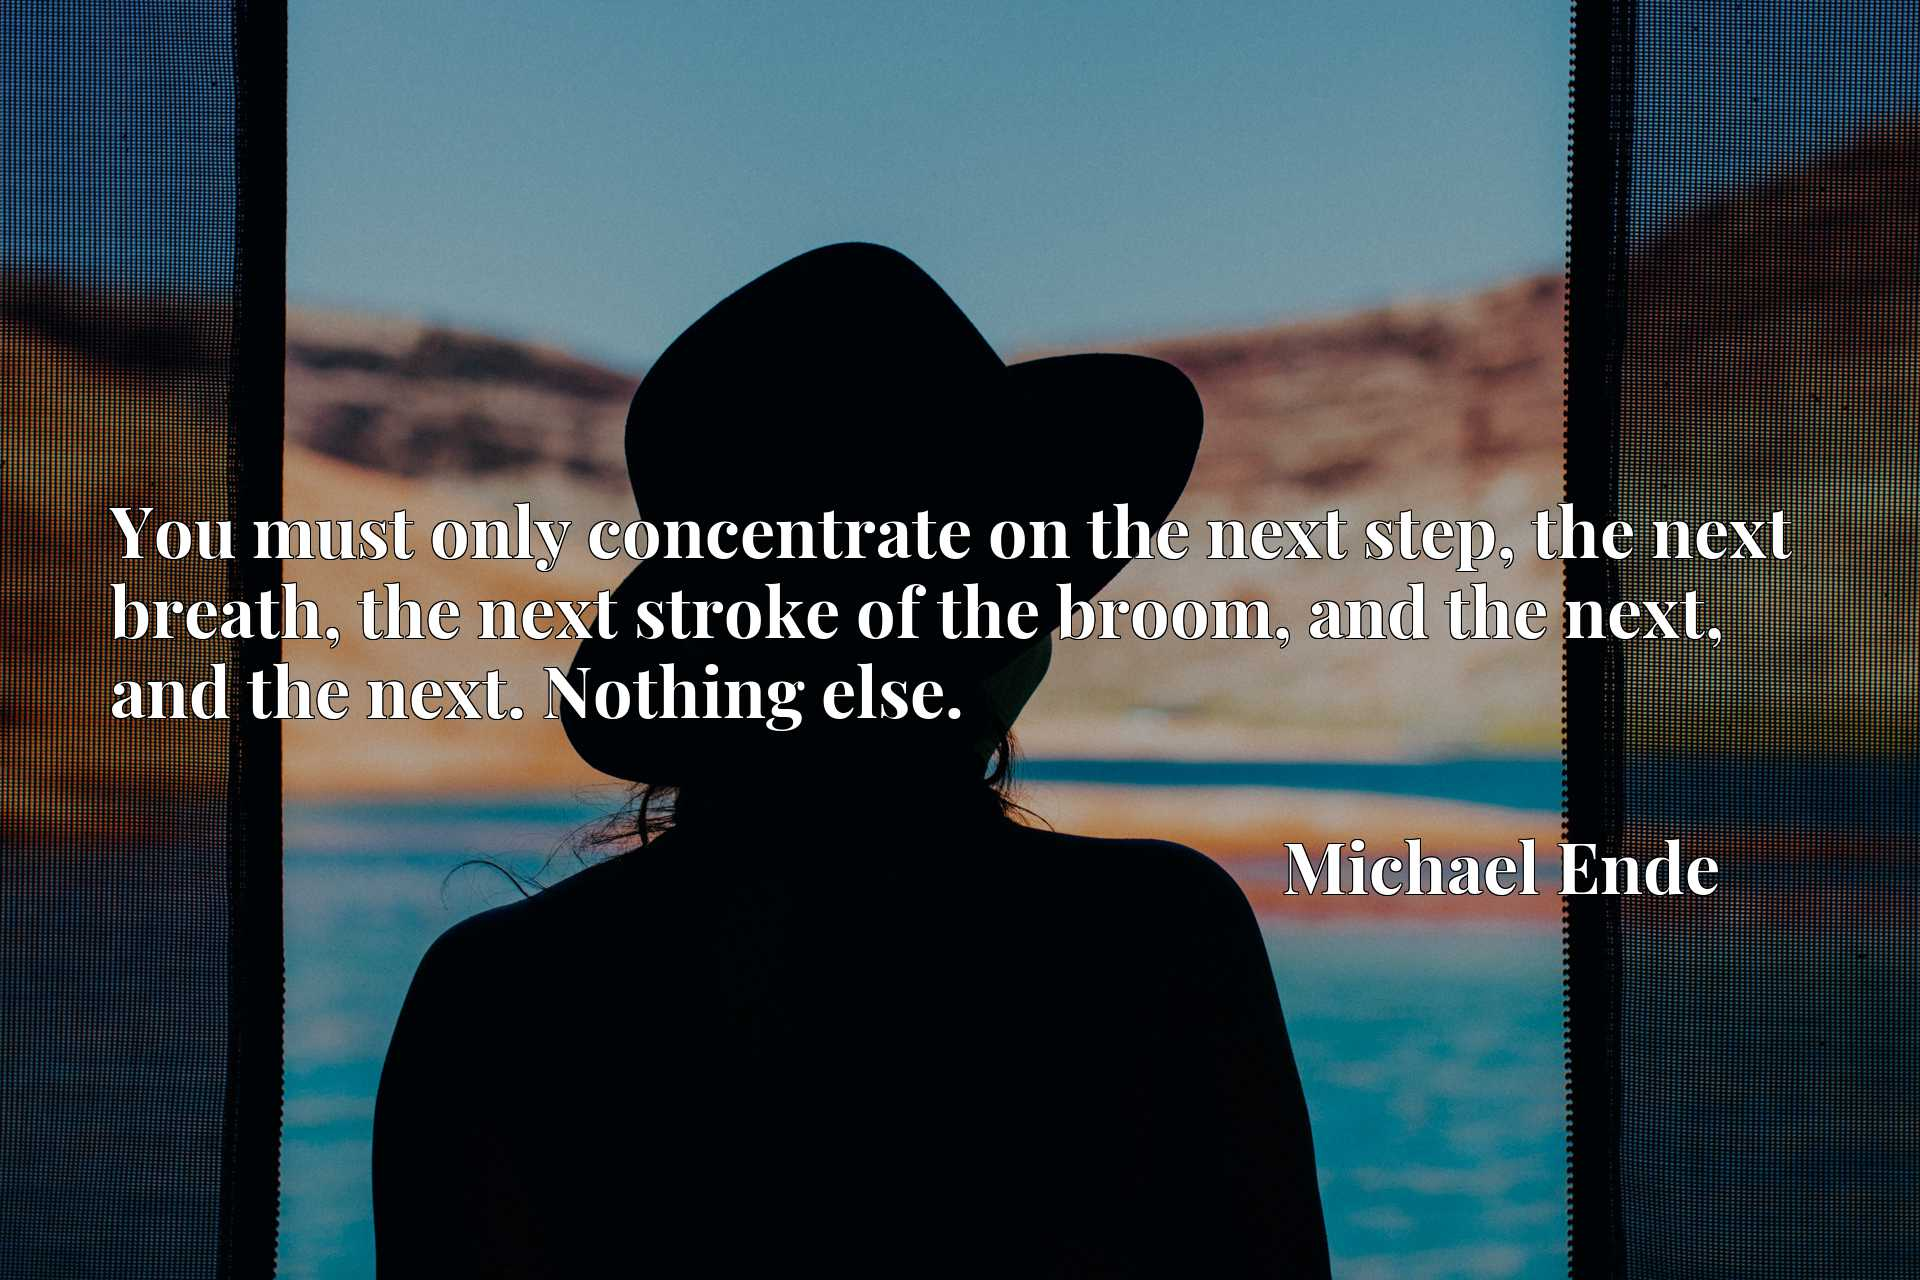 You must only concentrate on the next step, the next breath, the next stroke of the broom, and the next, and the next. Nothing else.